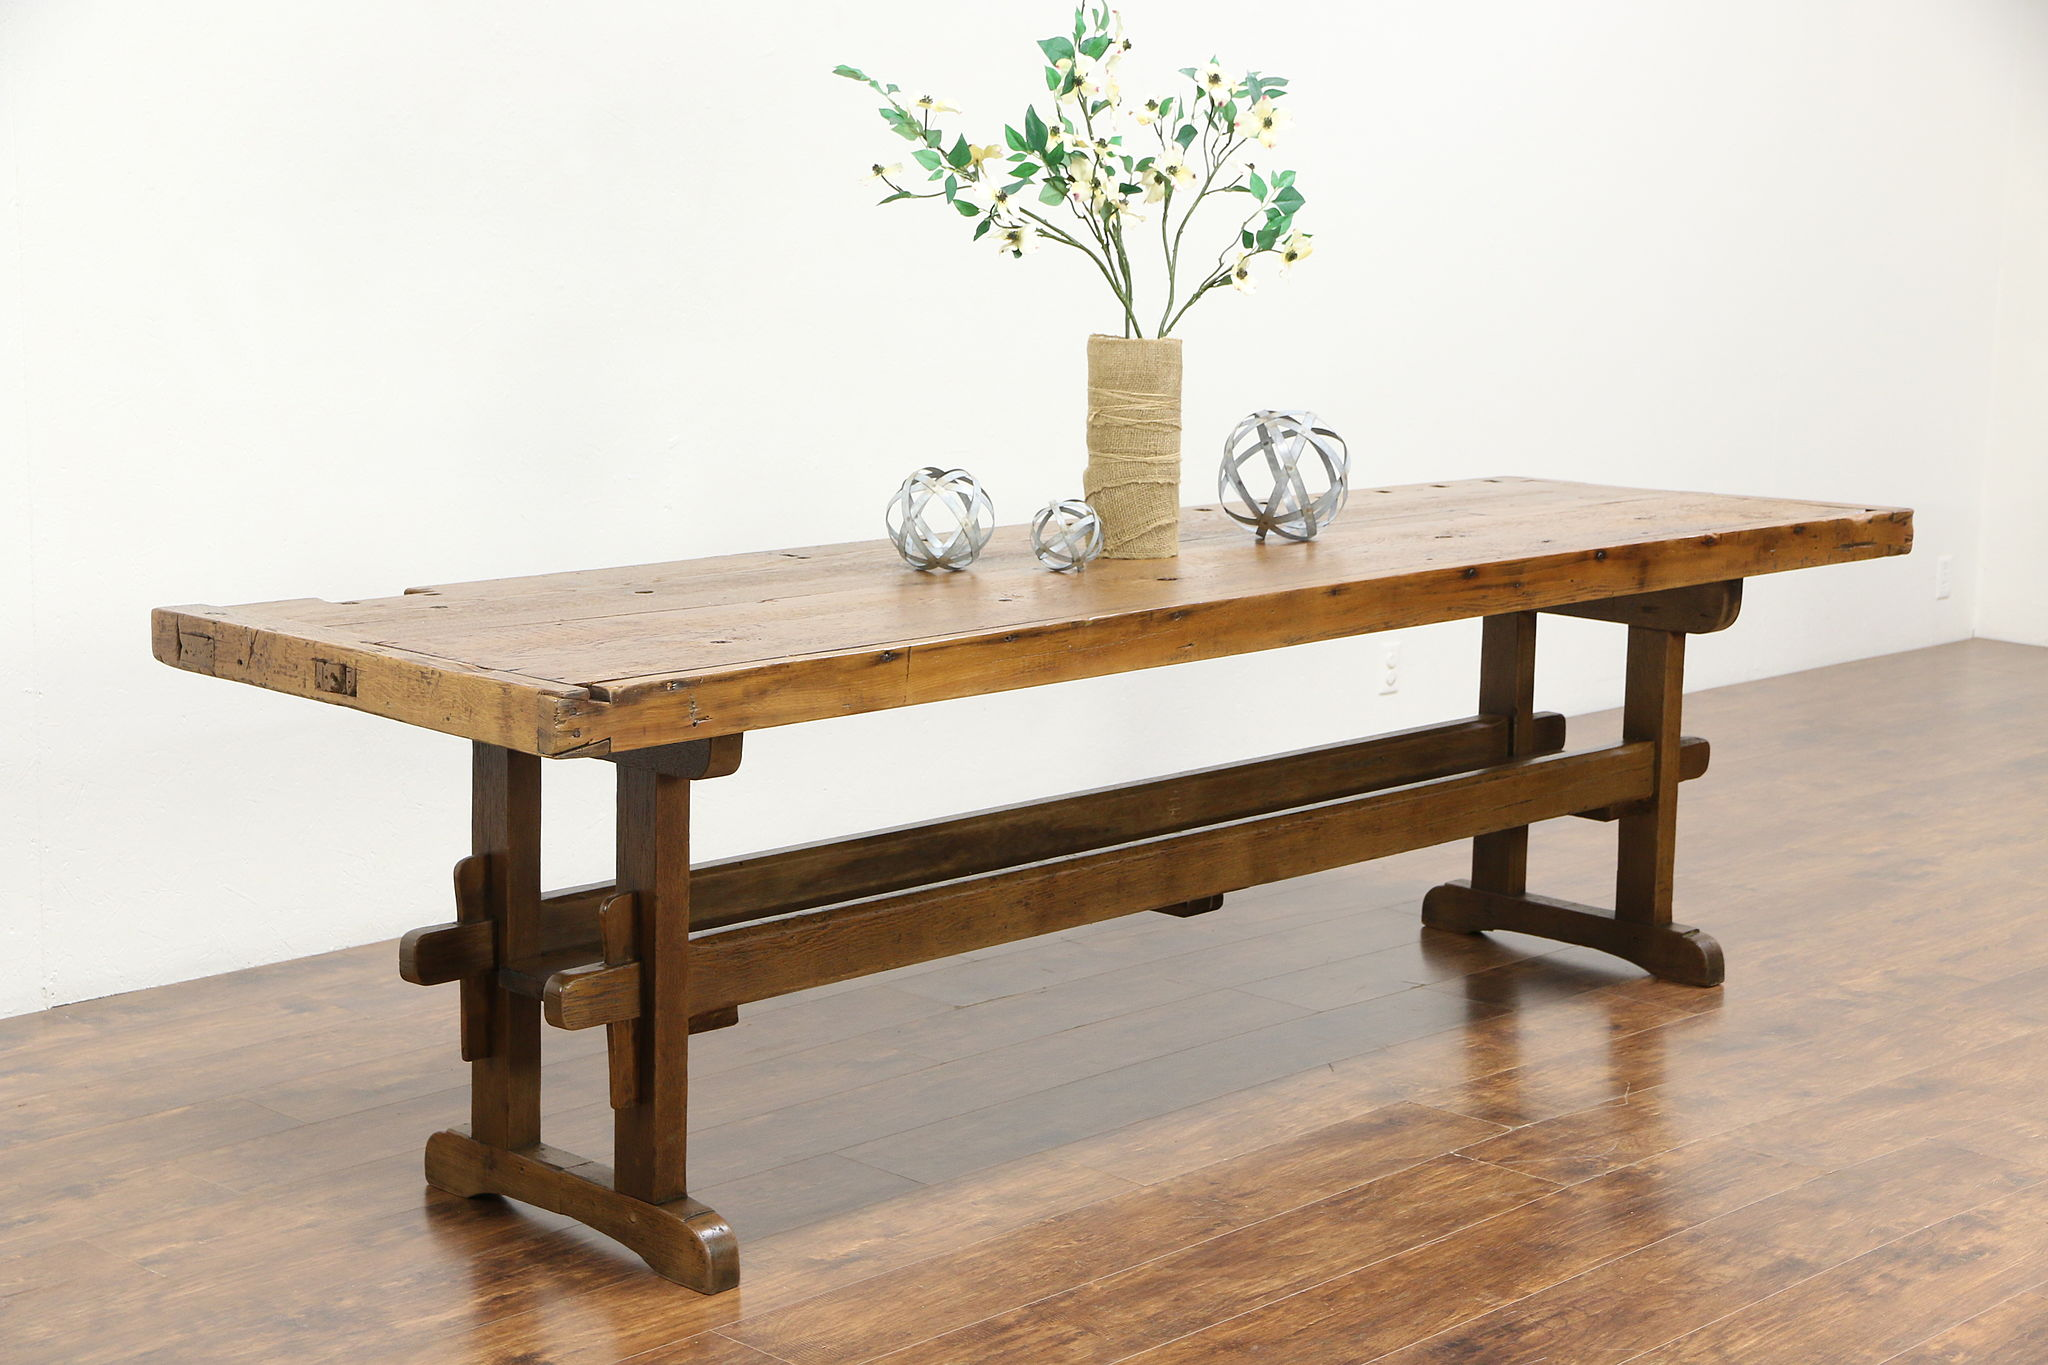 Carpenter Workbench Rustic Antique 1900 Dining Or Kitchen Table, 9u0027 Long  Photo